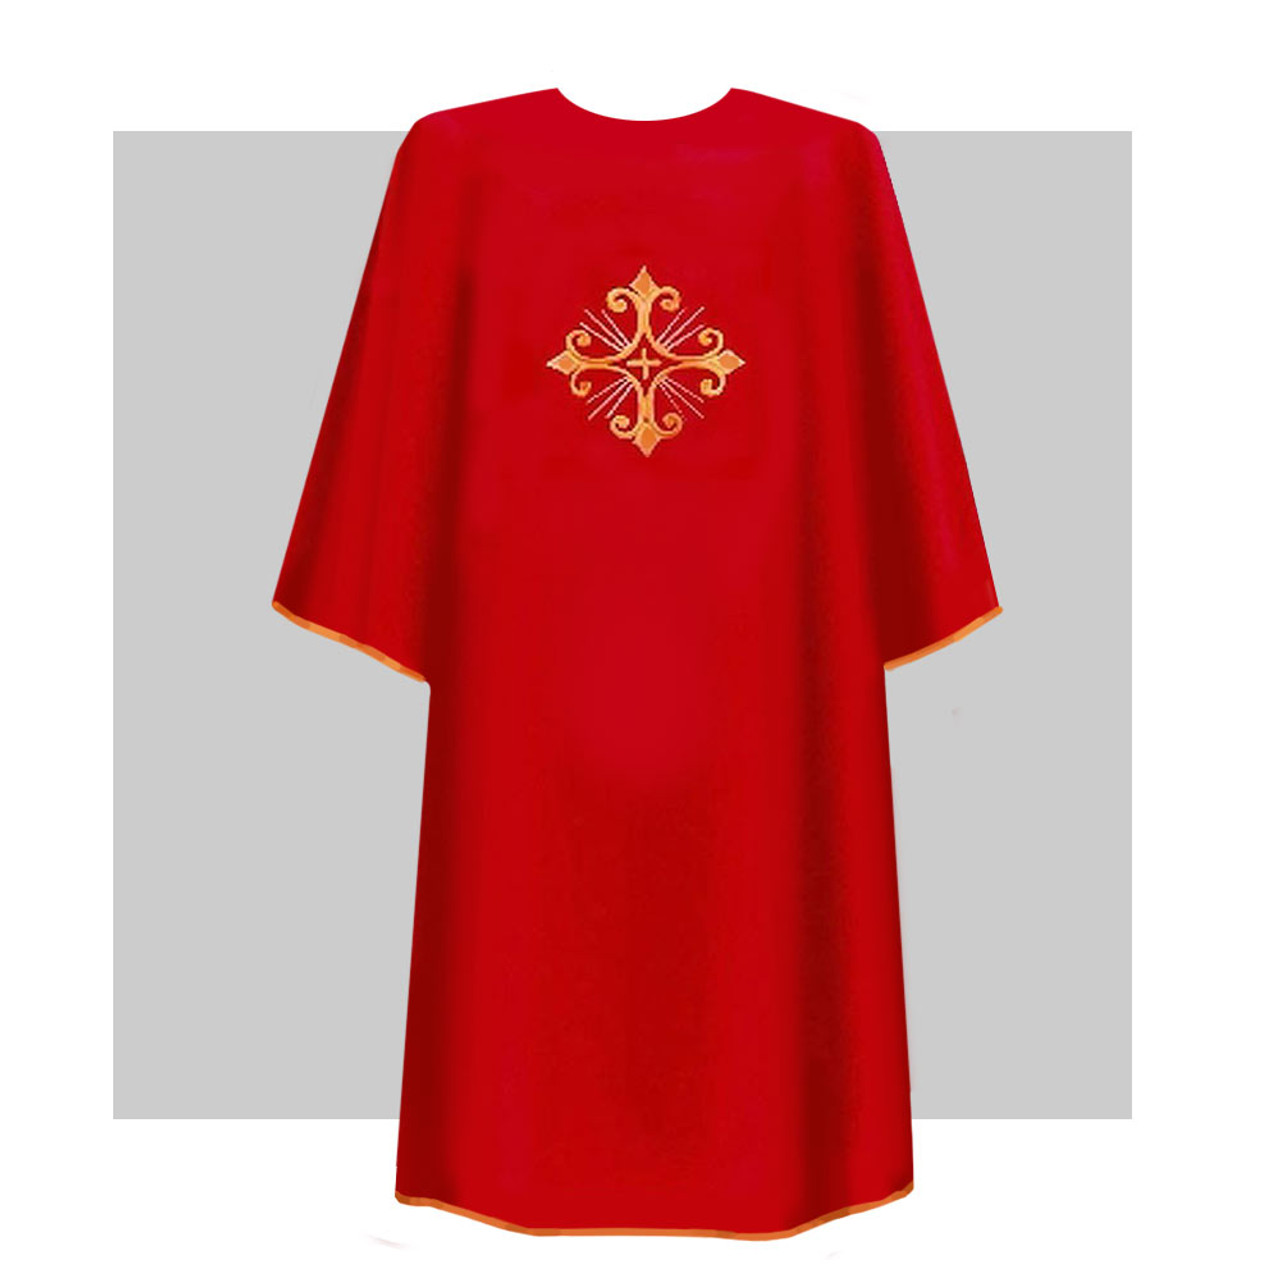 351 Red Dalmatic from Solivari